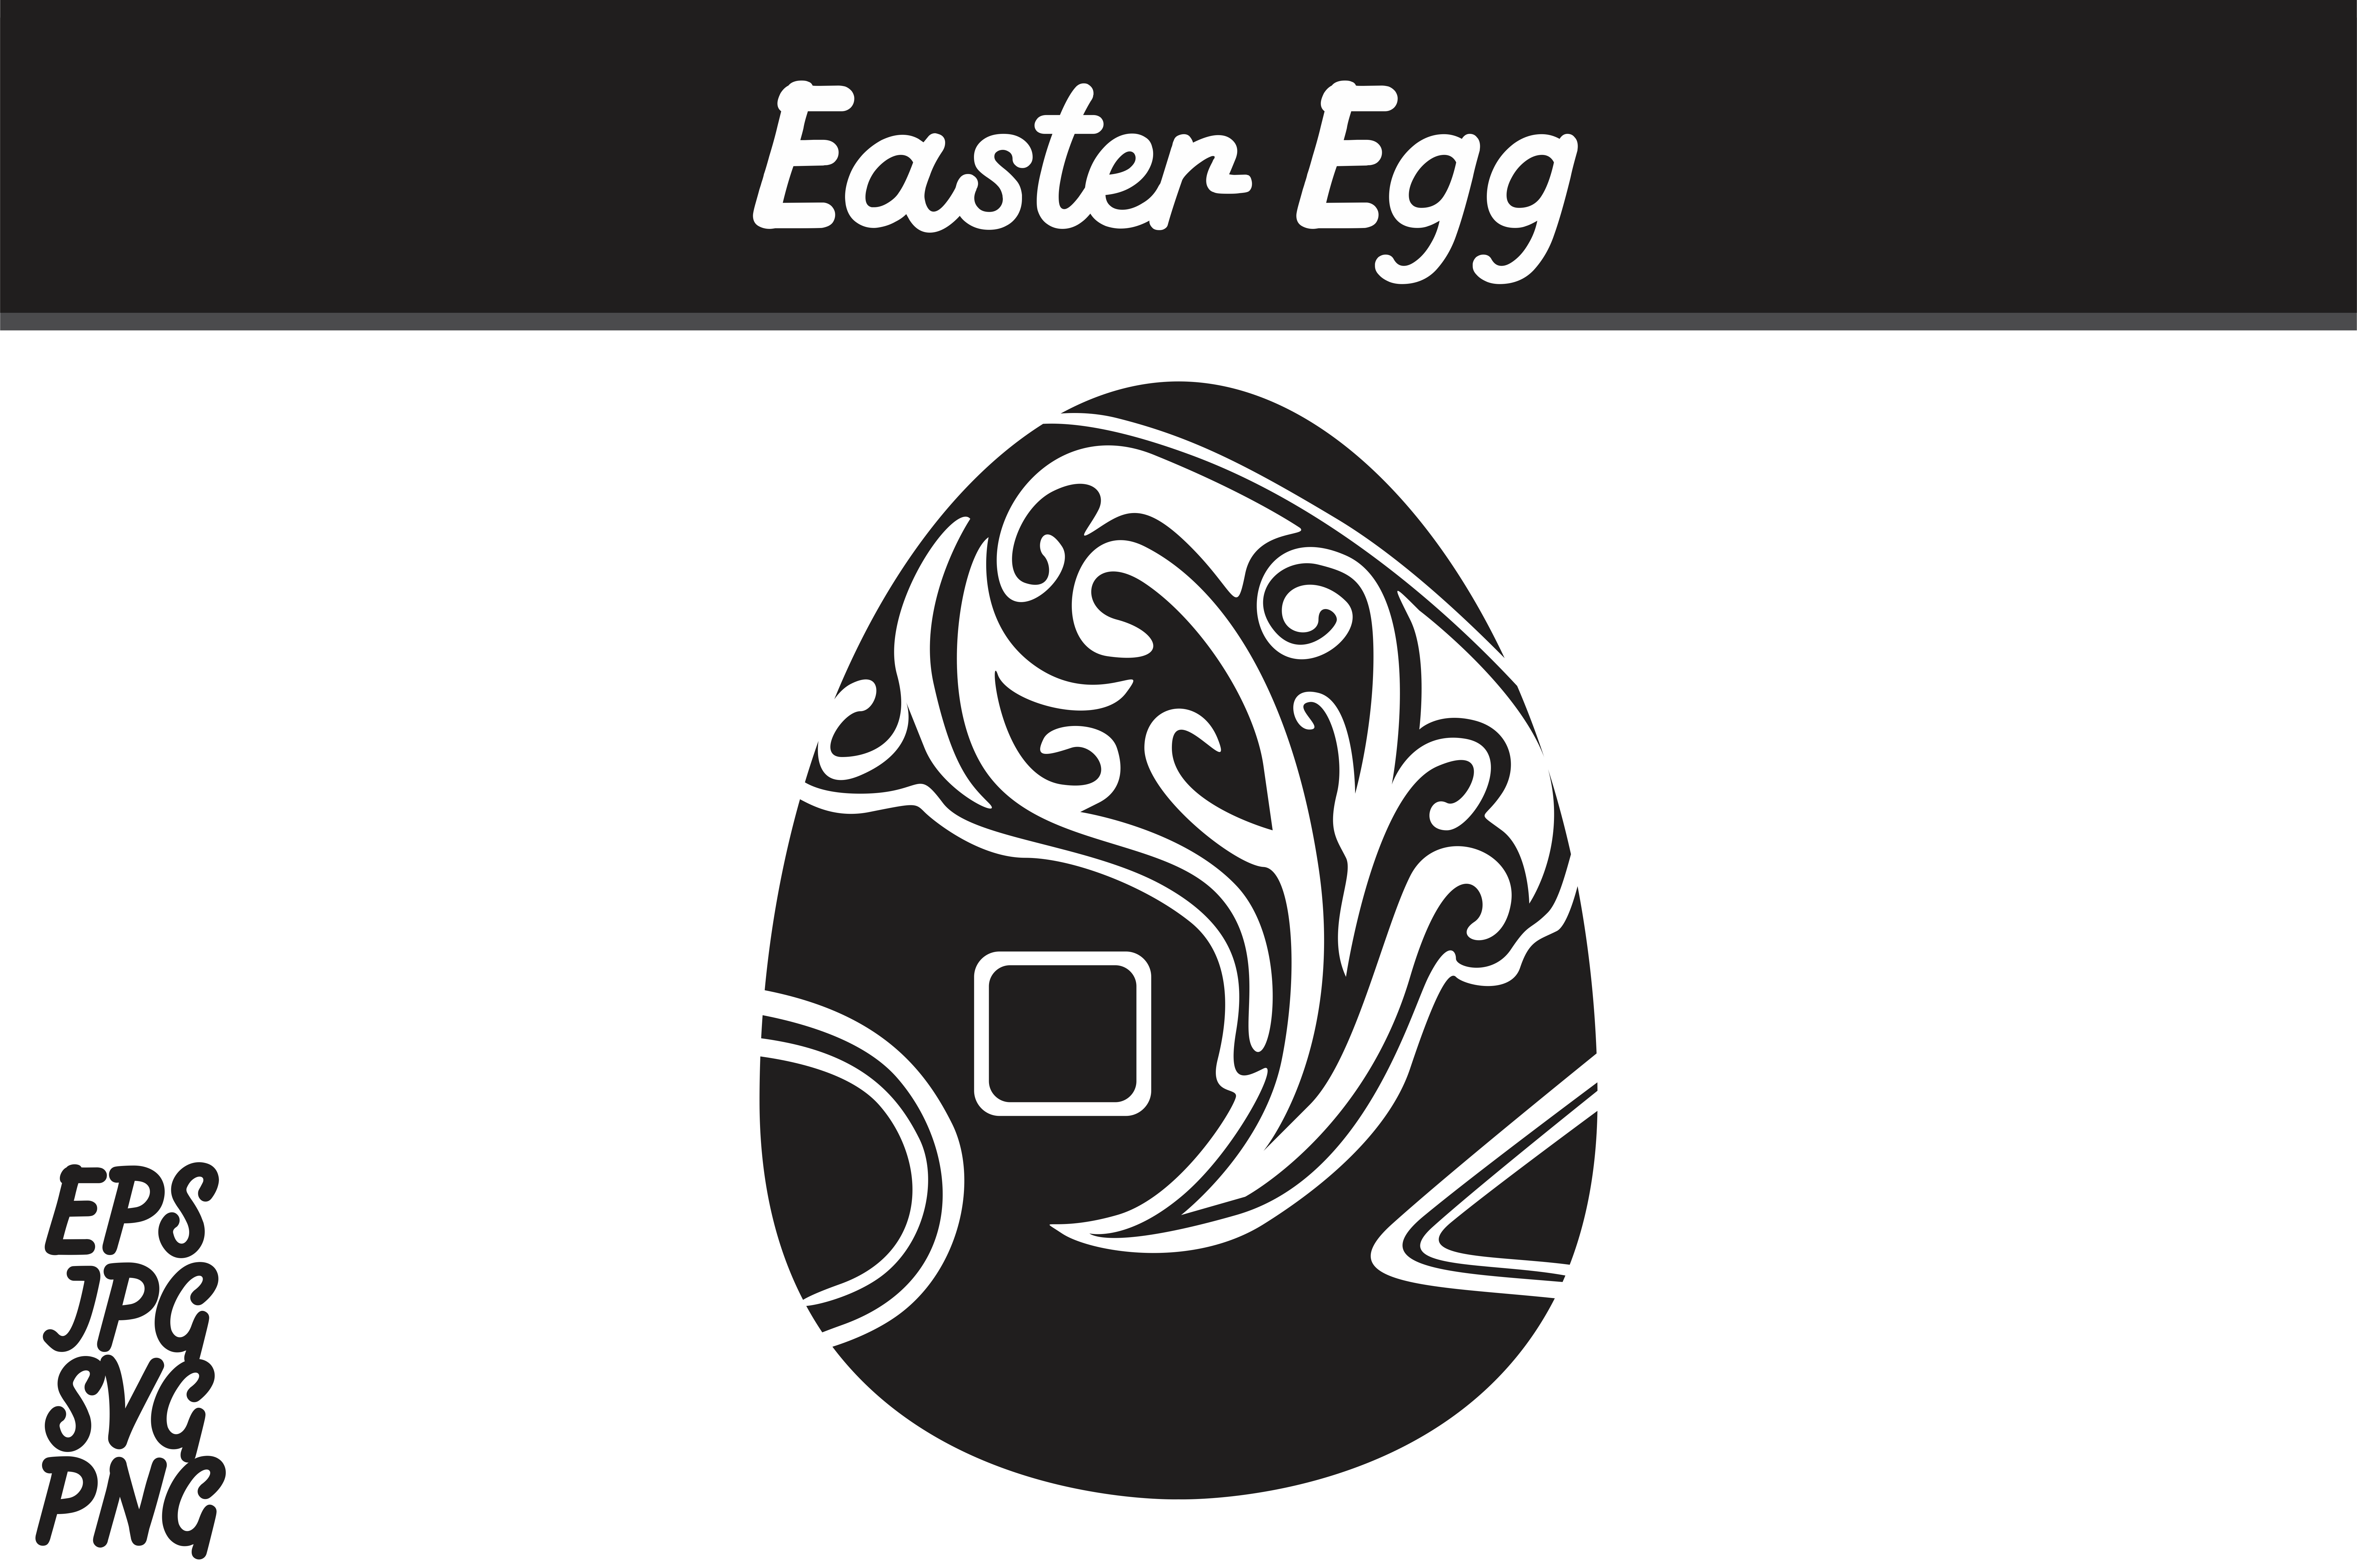 Download Free Easter Egg Svg Vector Image Graphic By Arief Sapta Adjie for Cricut Explore, Silhouette and other cutting machines.